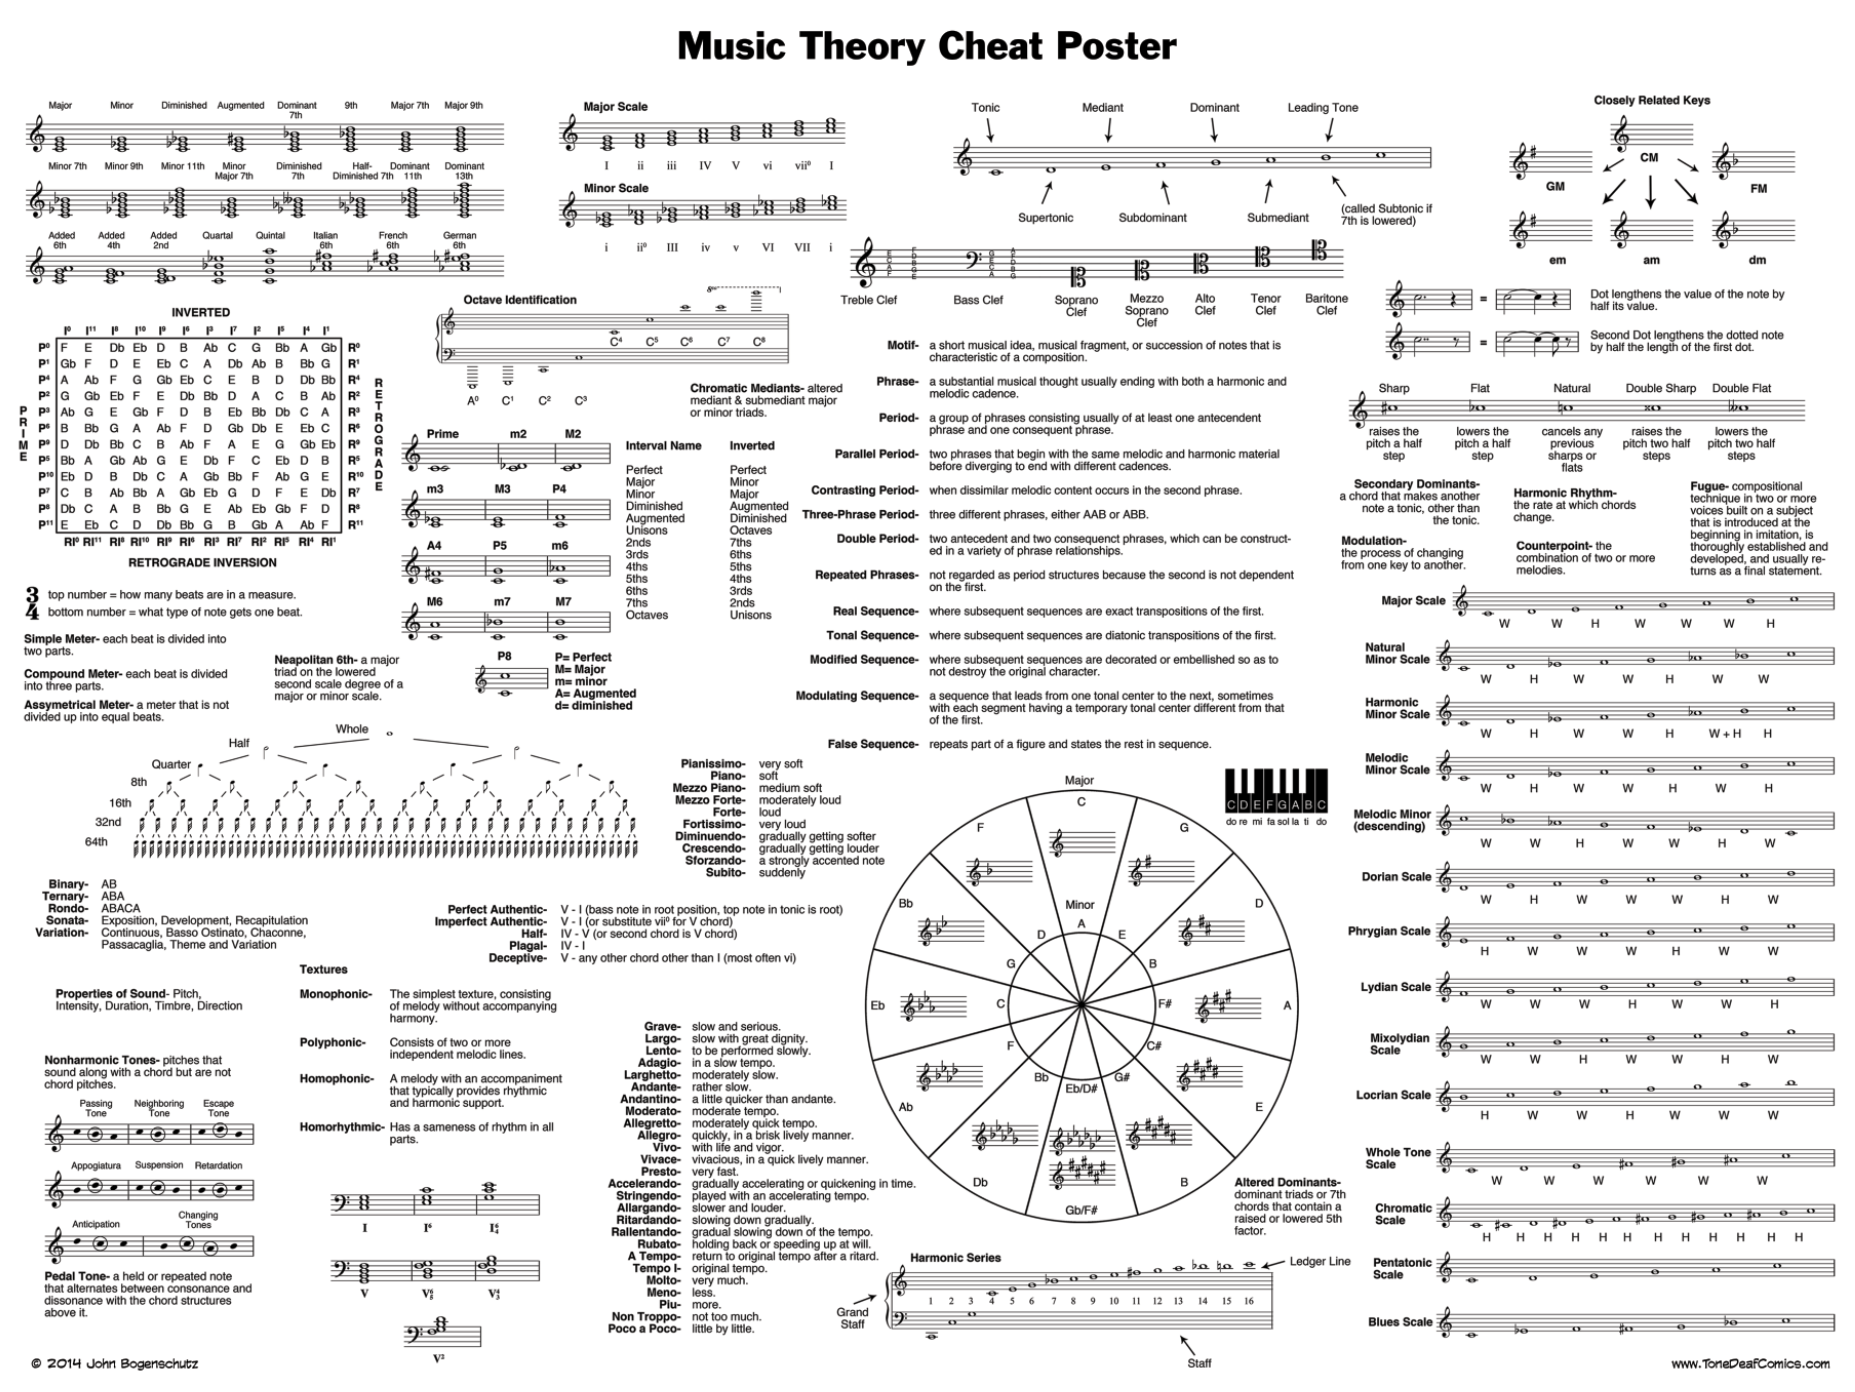 24 X 18 Music Theory Cheat Poster